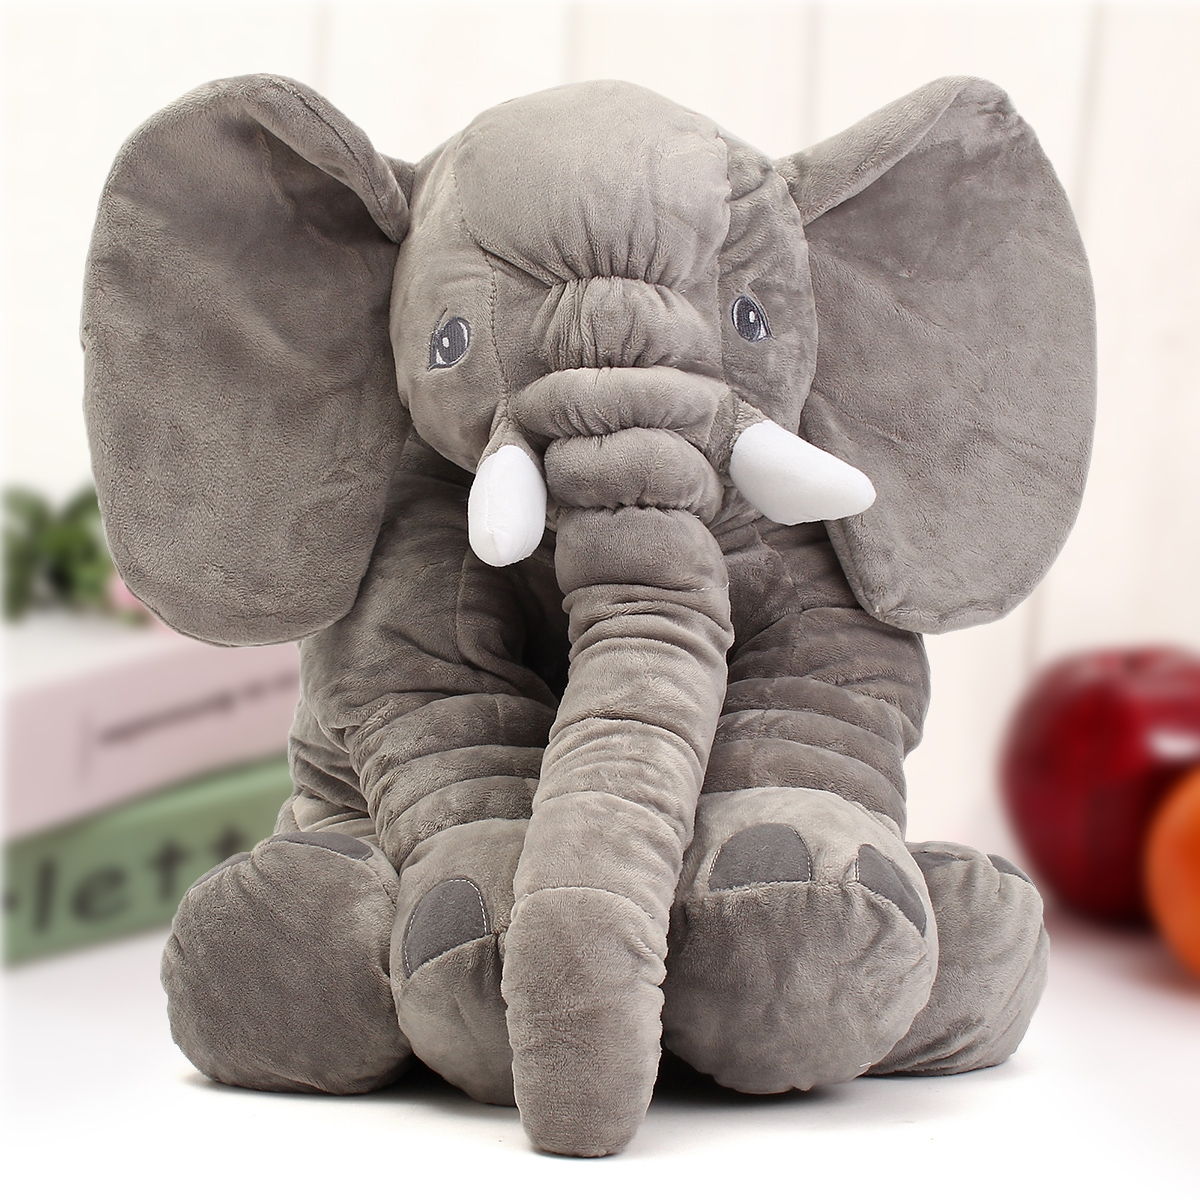 23.5 60cm Cute Jumbo Elephant Plush Doll Stuffed Animal Soft Kids Toy Gift""